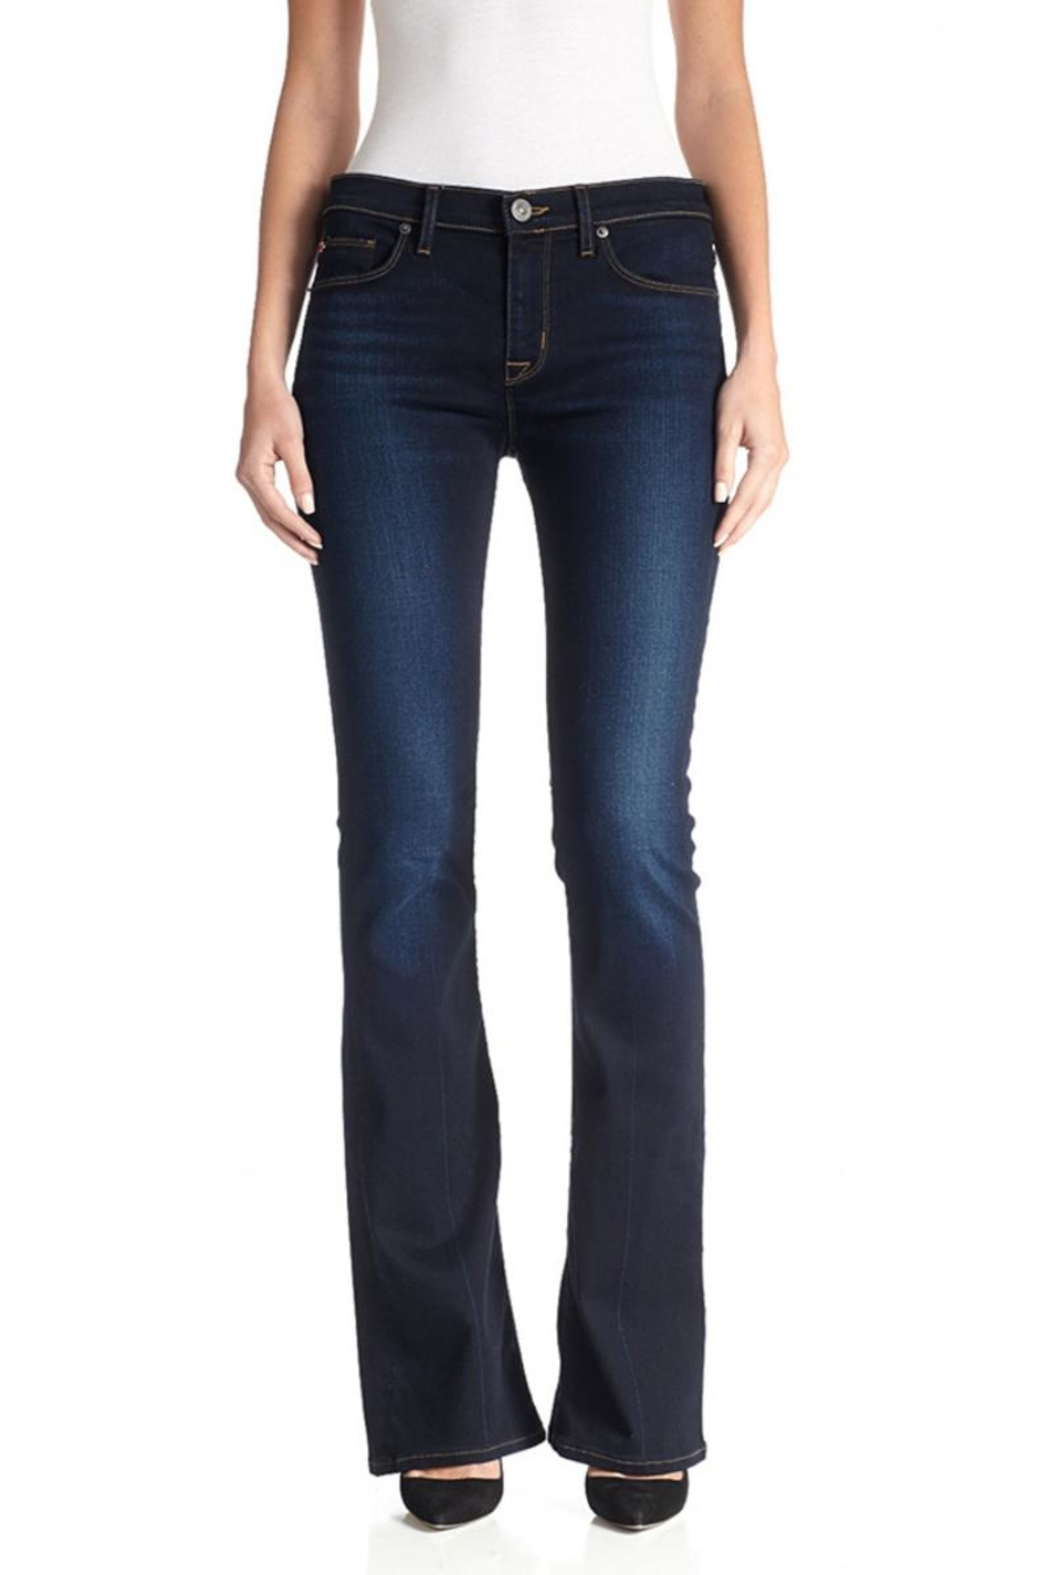 Hudson Jeans Dark-Wash Petite Bootcut - Side Cropped Image